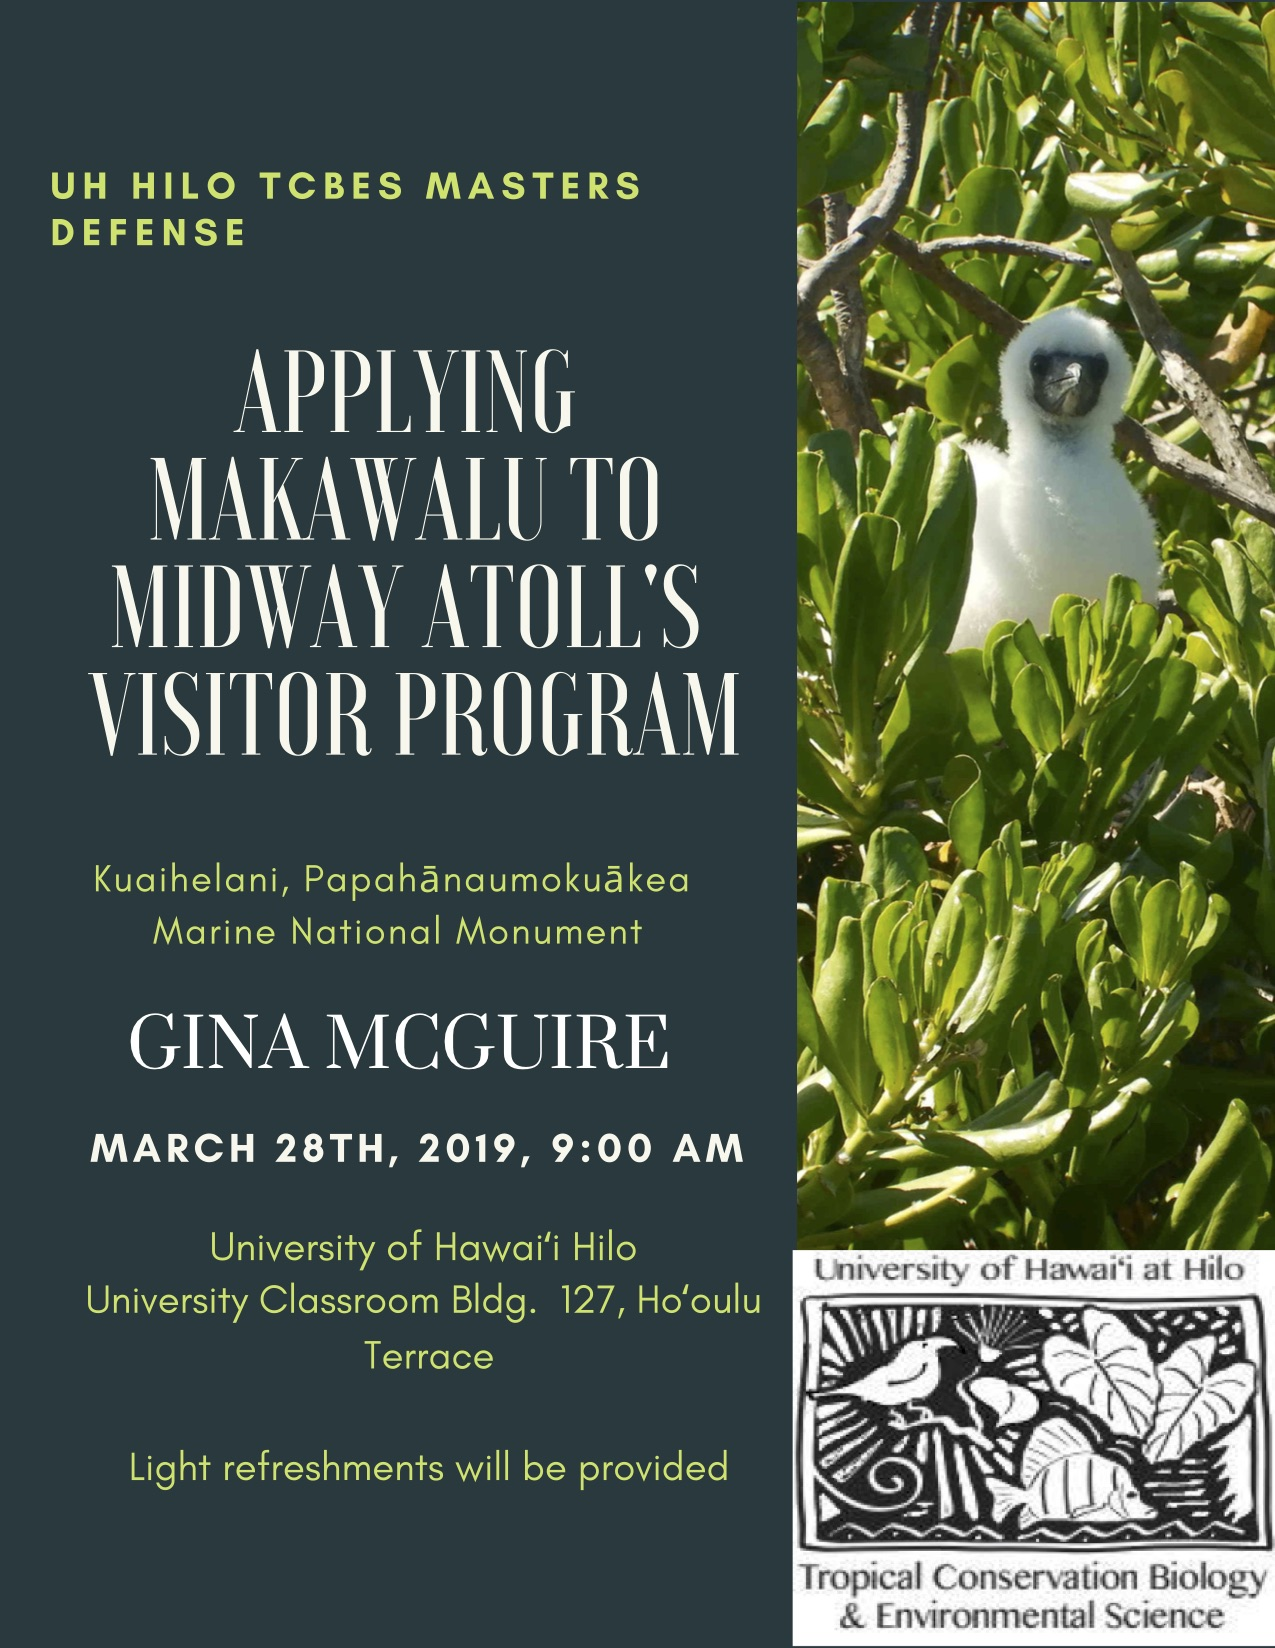 UH Hilo TCBES Masters Defense: Applying Makawalu to Midway Atoll's Visitor Program, Kuaihelani, Papahānaumokuākea Marine National Monument on Thursday, March 28th at 9am, in <span class=